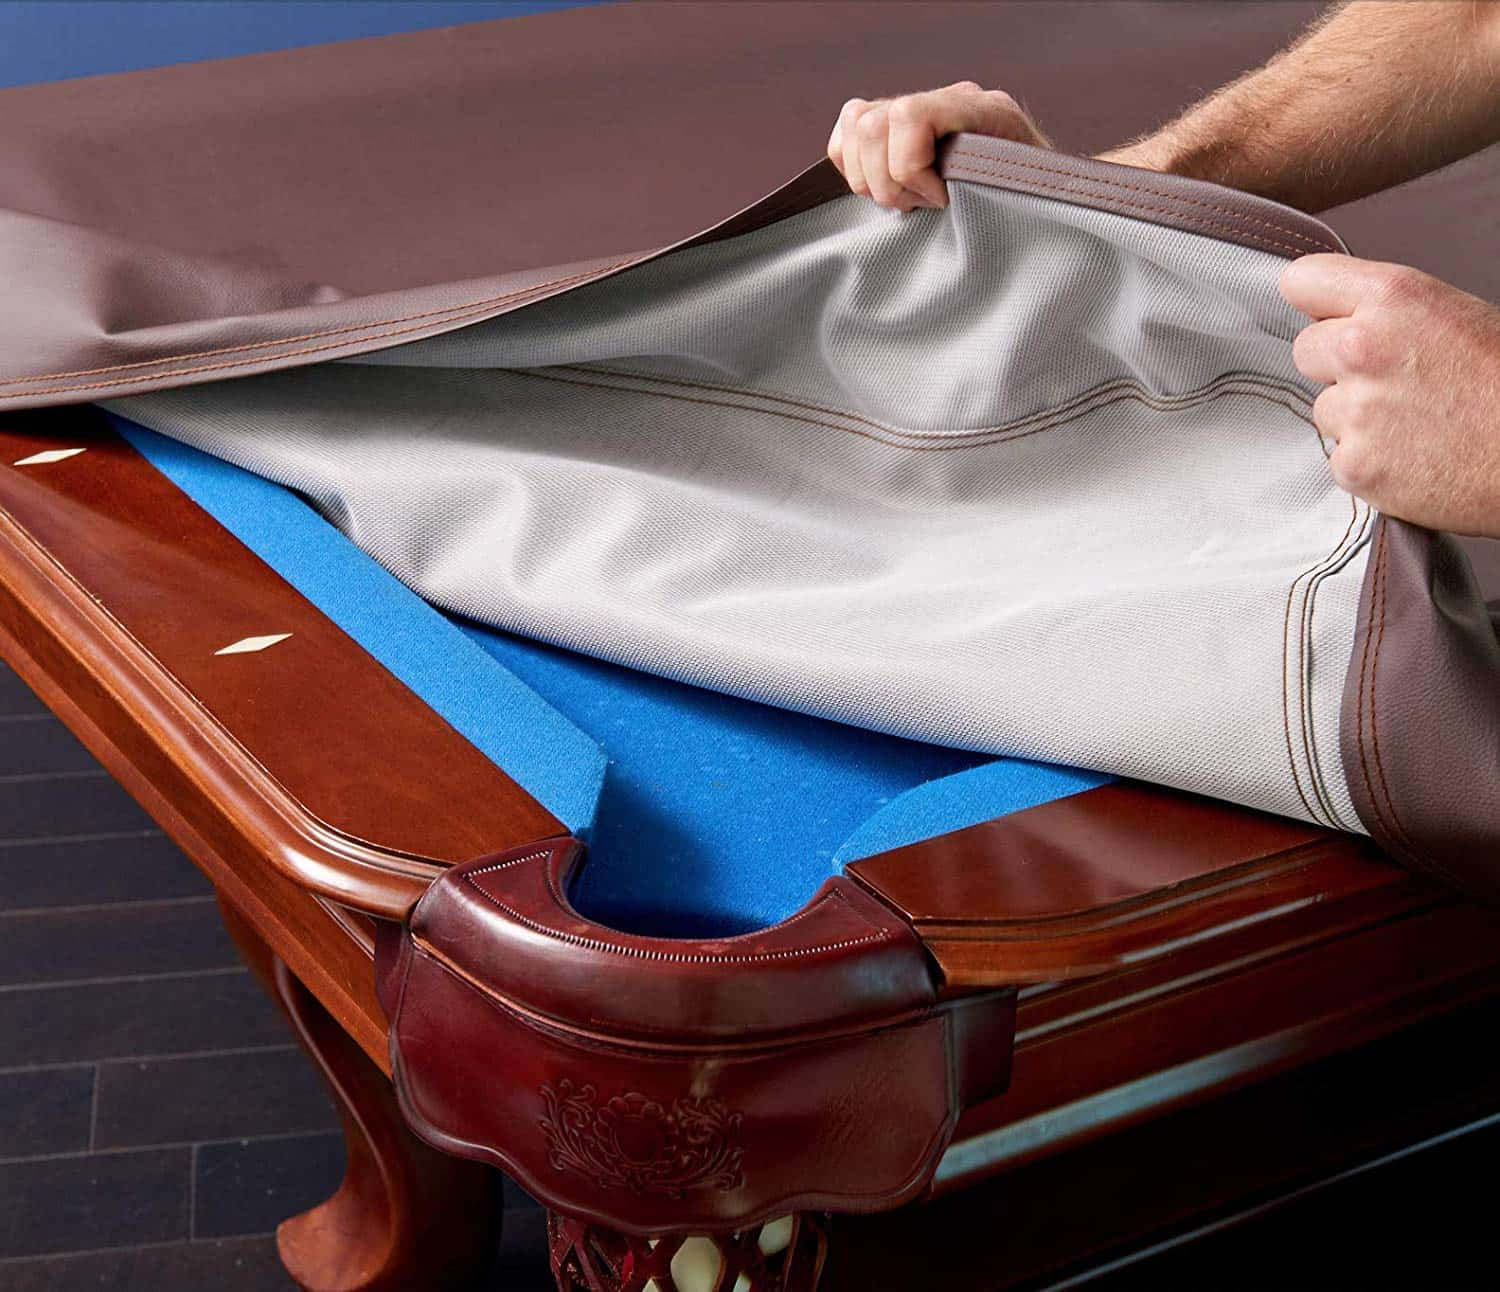 CueStix International Fitted Heavy Duty Naugahyde Pool Table Cover for 7-Feet Table Tan